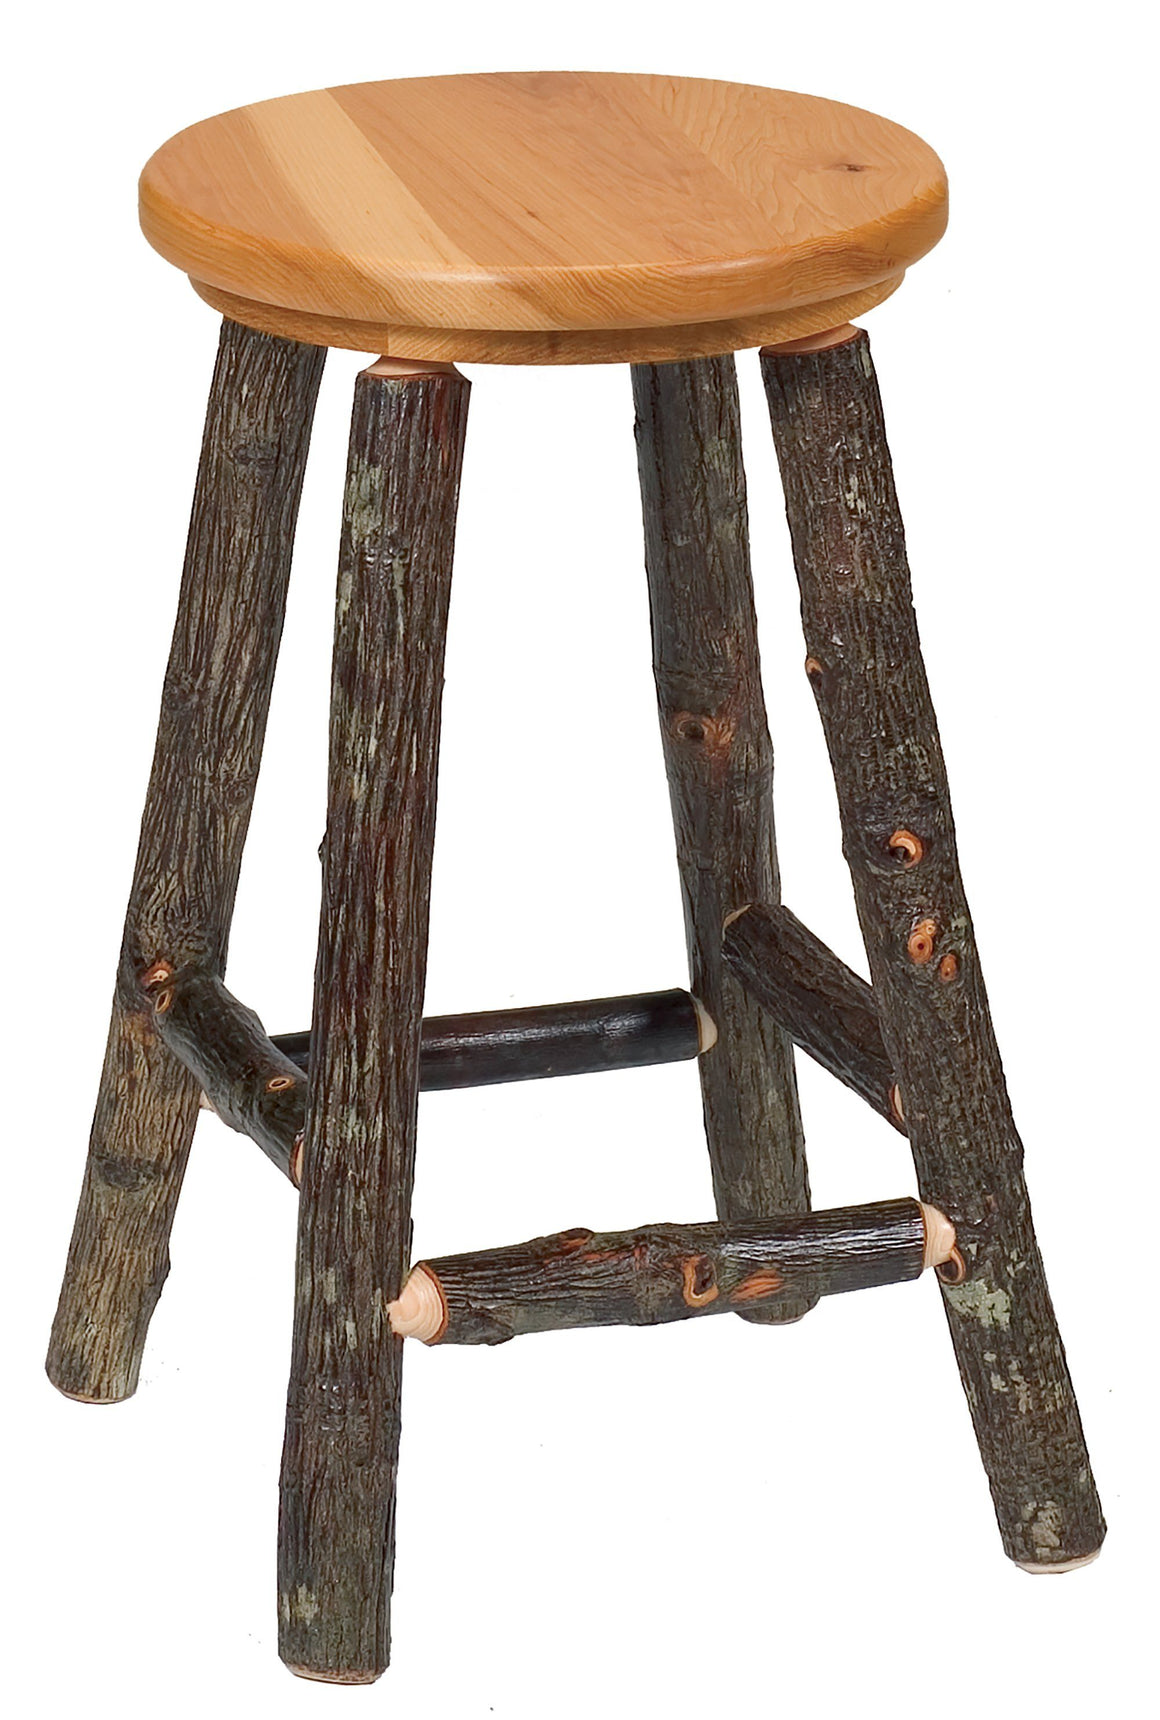 "Natural Hickory Log Round Counter Stool - 24"" high - Wood Seat - (Non-Swivel)-Rustic Deco Incorporated"